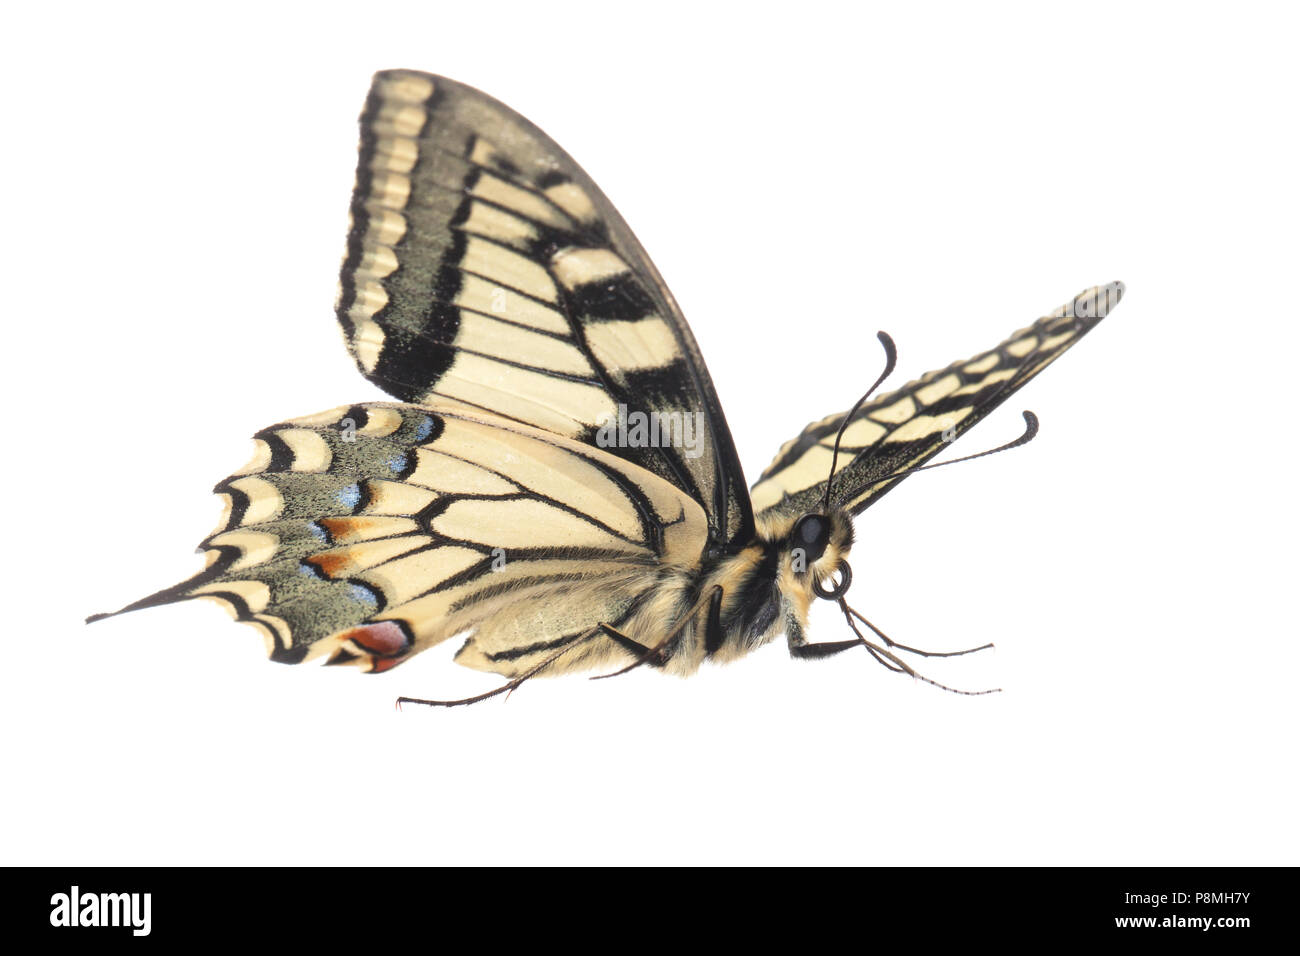 old world swallowtail isolated against a white background - Stock Image